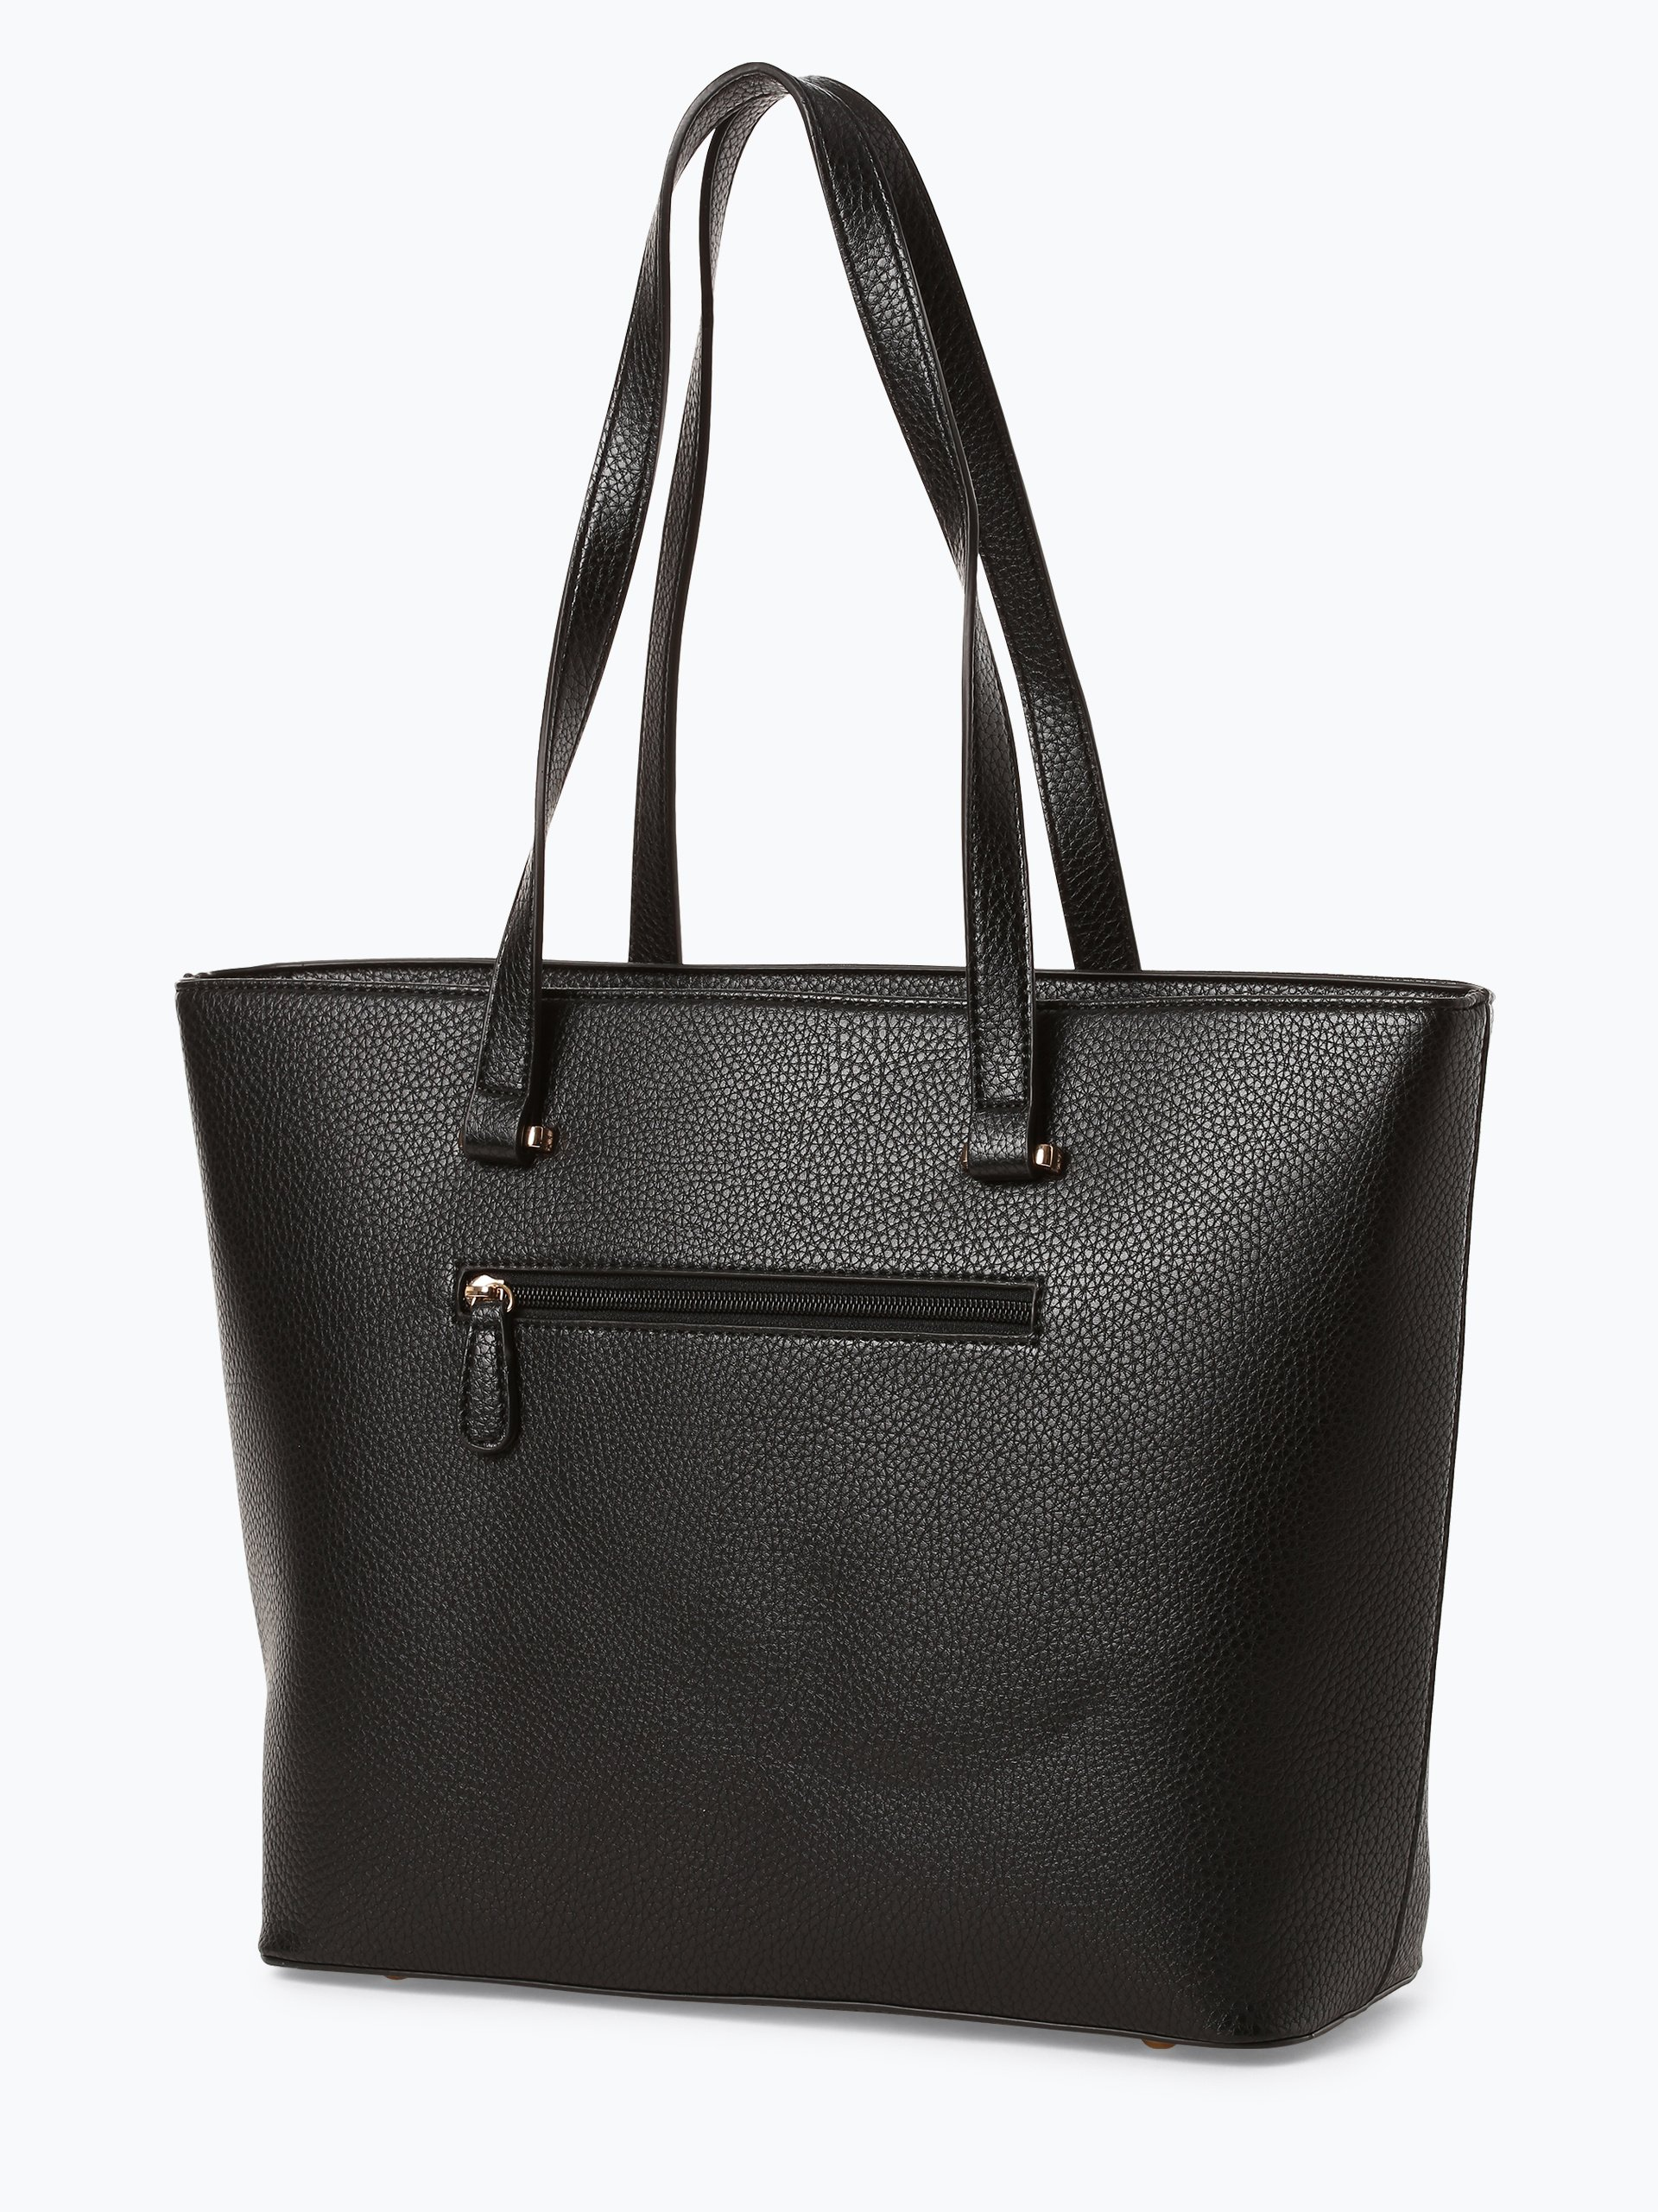 L.Credi Damen Shopper - Maxima